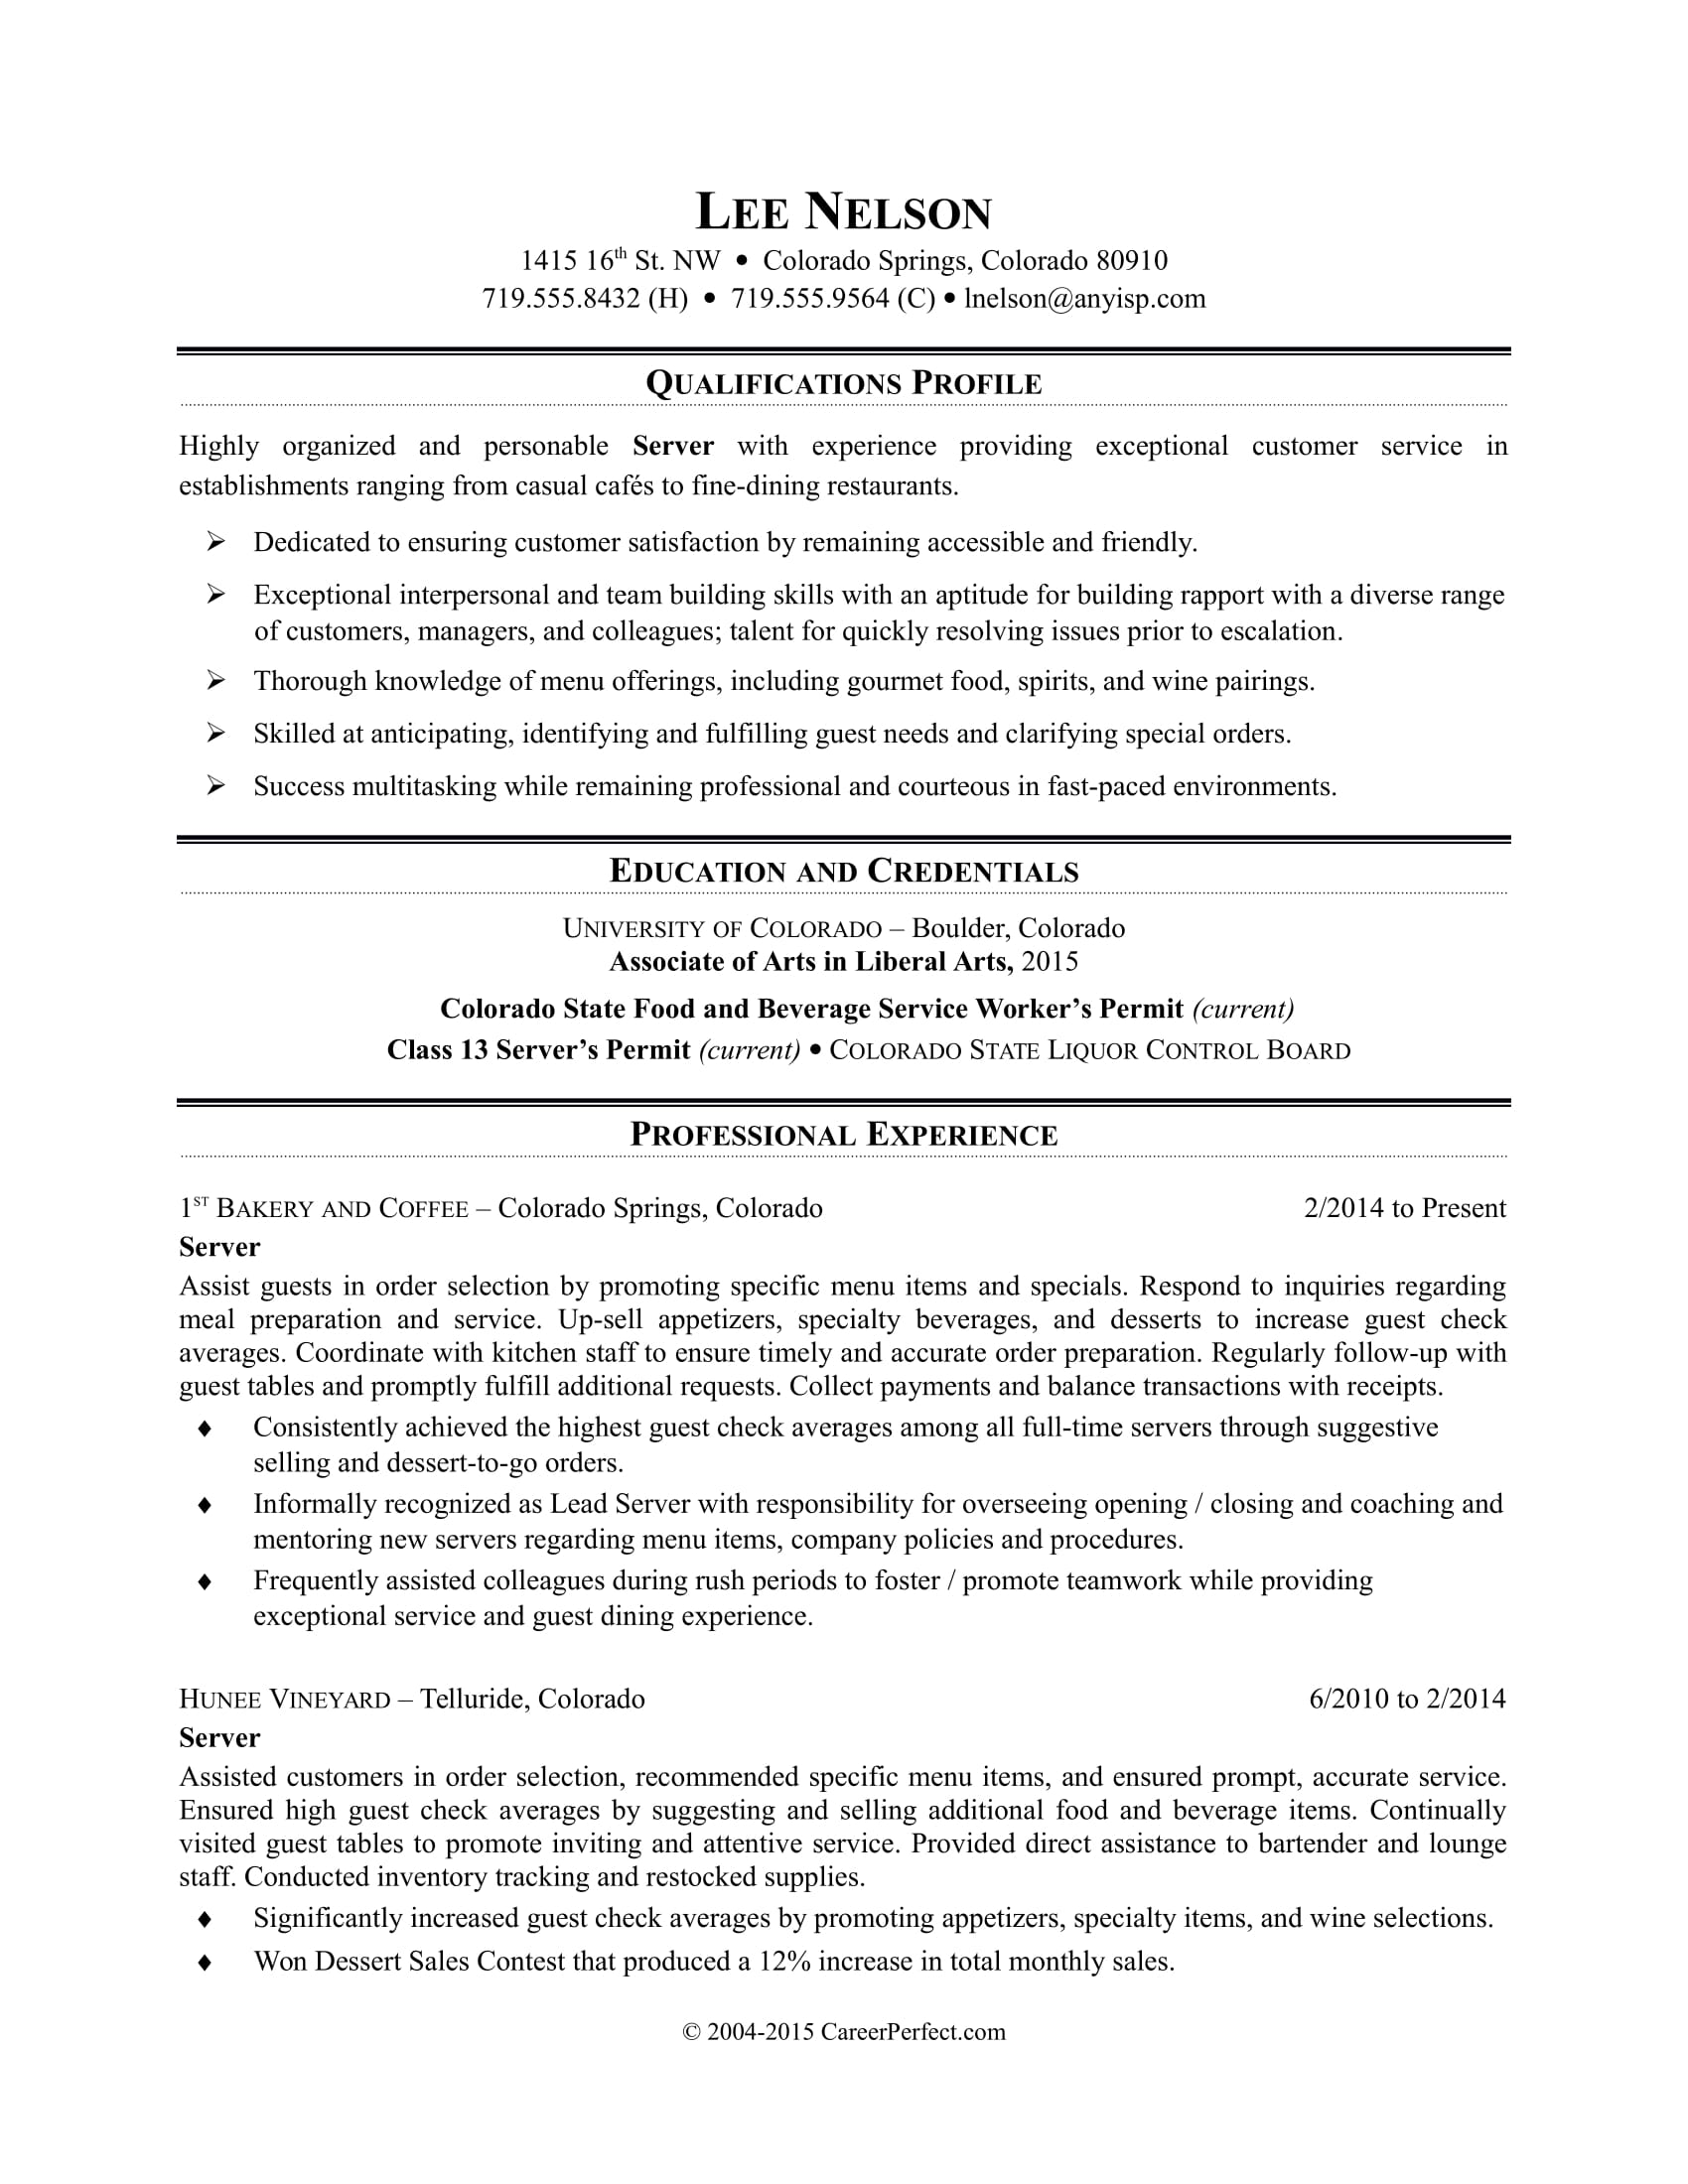 Sample Resume For A Restaurant Server Regard To Restaurant Resume